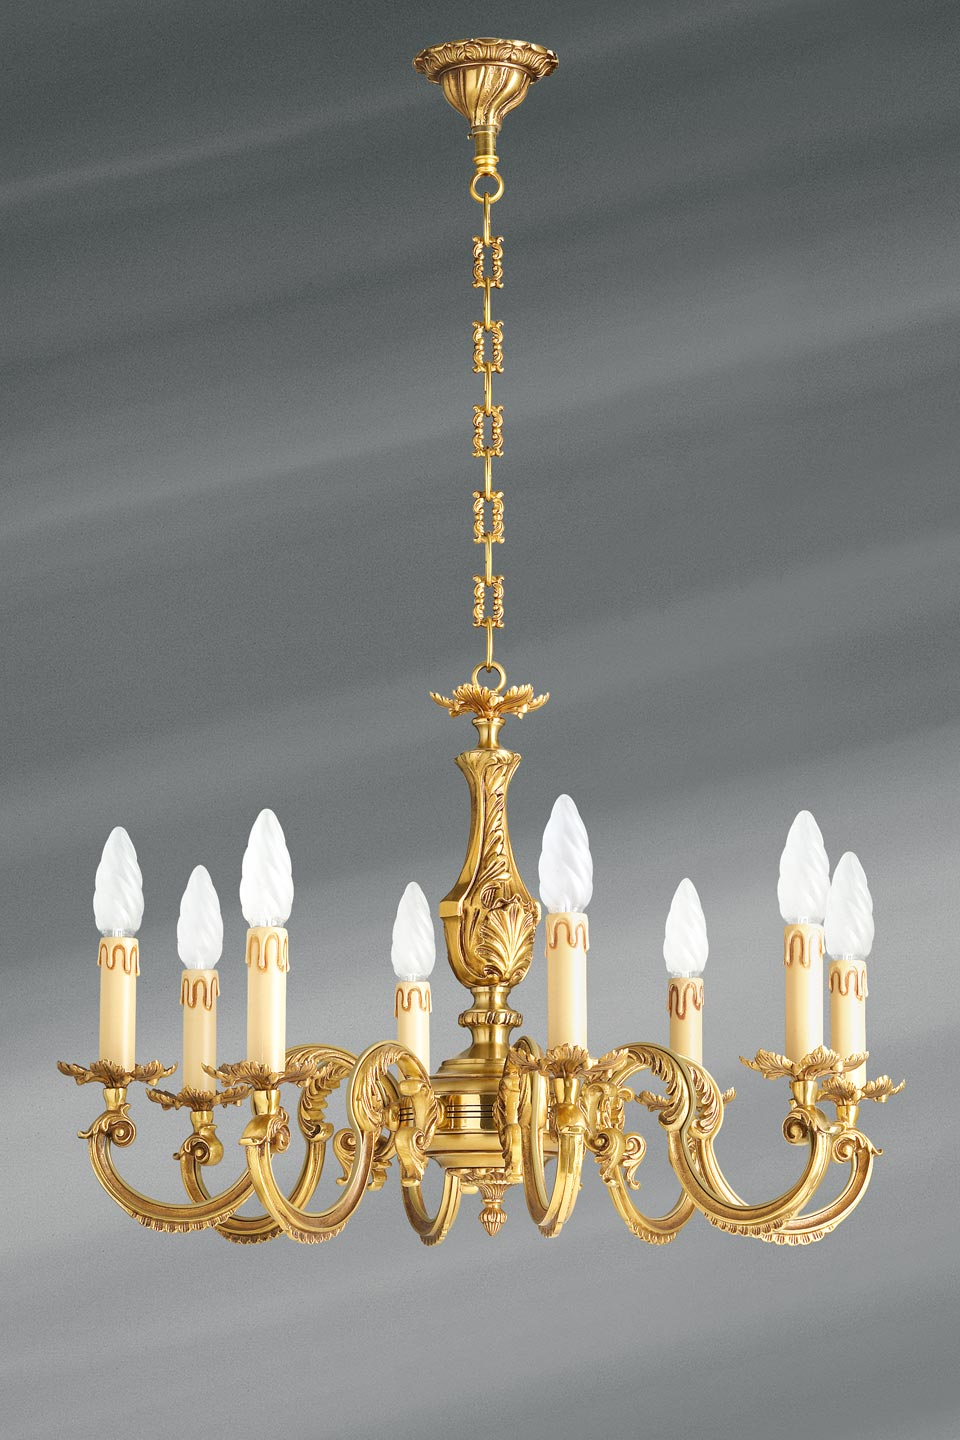 classic chandelier in solid bronze decorated with acanthus leaf motifs old gold patina keys leaf bobeches